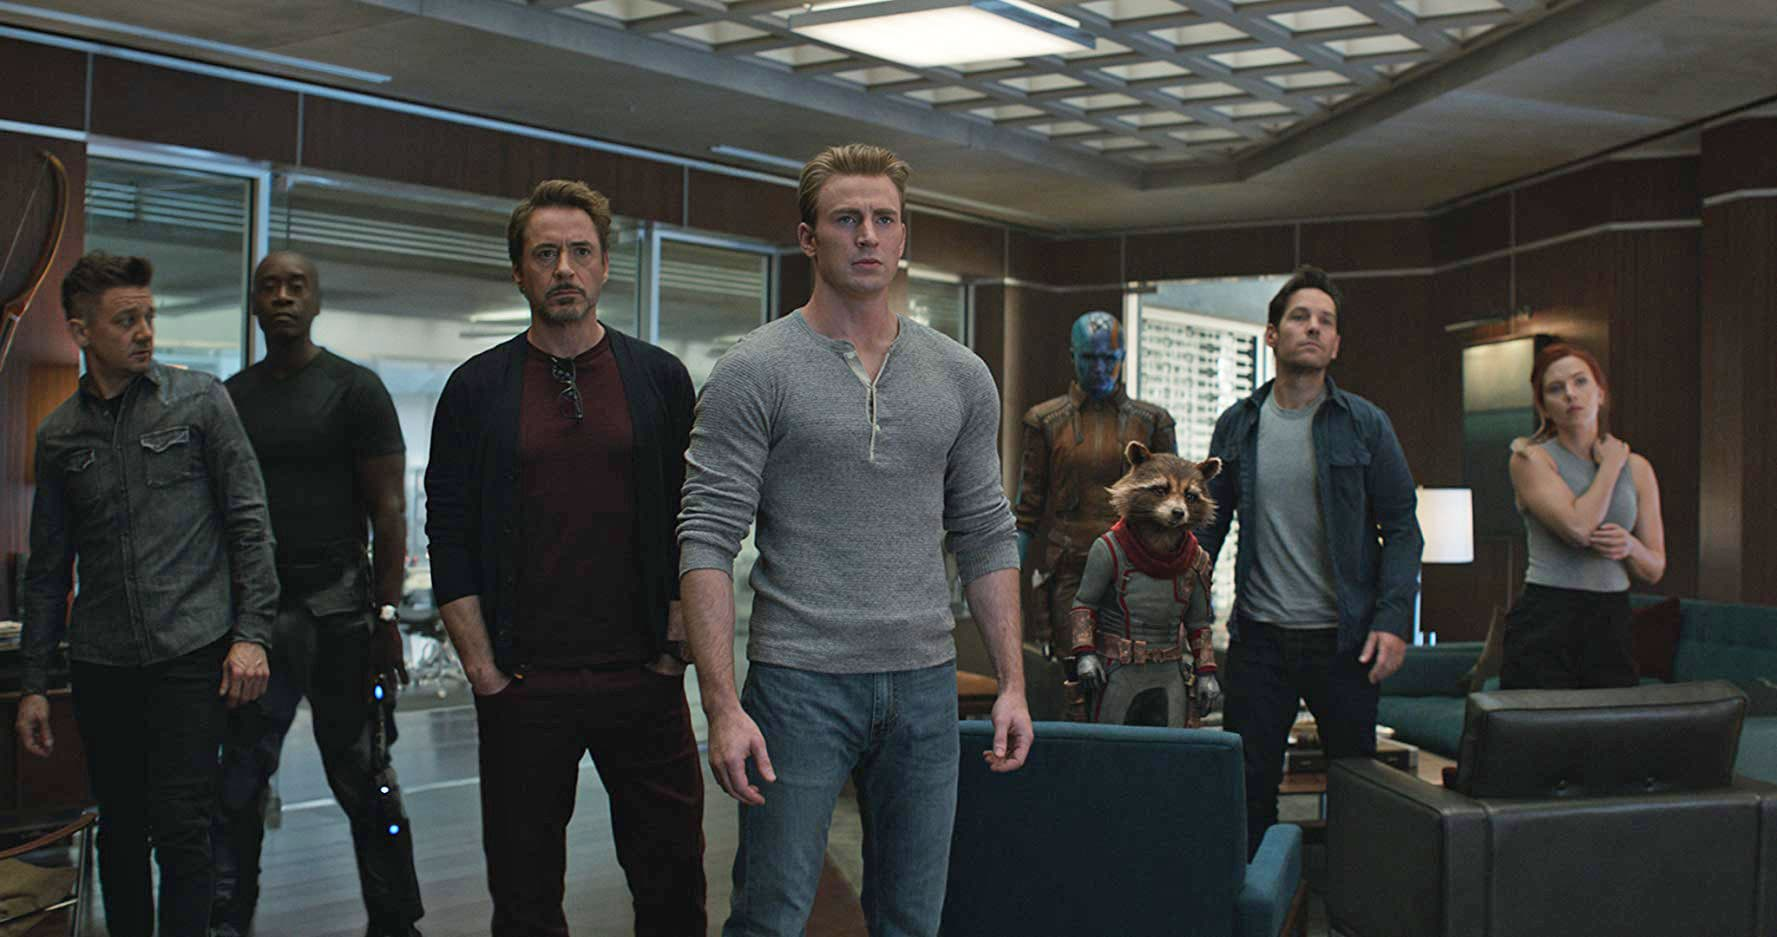 Avengers Endgame' demands to be seen in IMAX (no spoilers!)